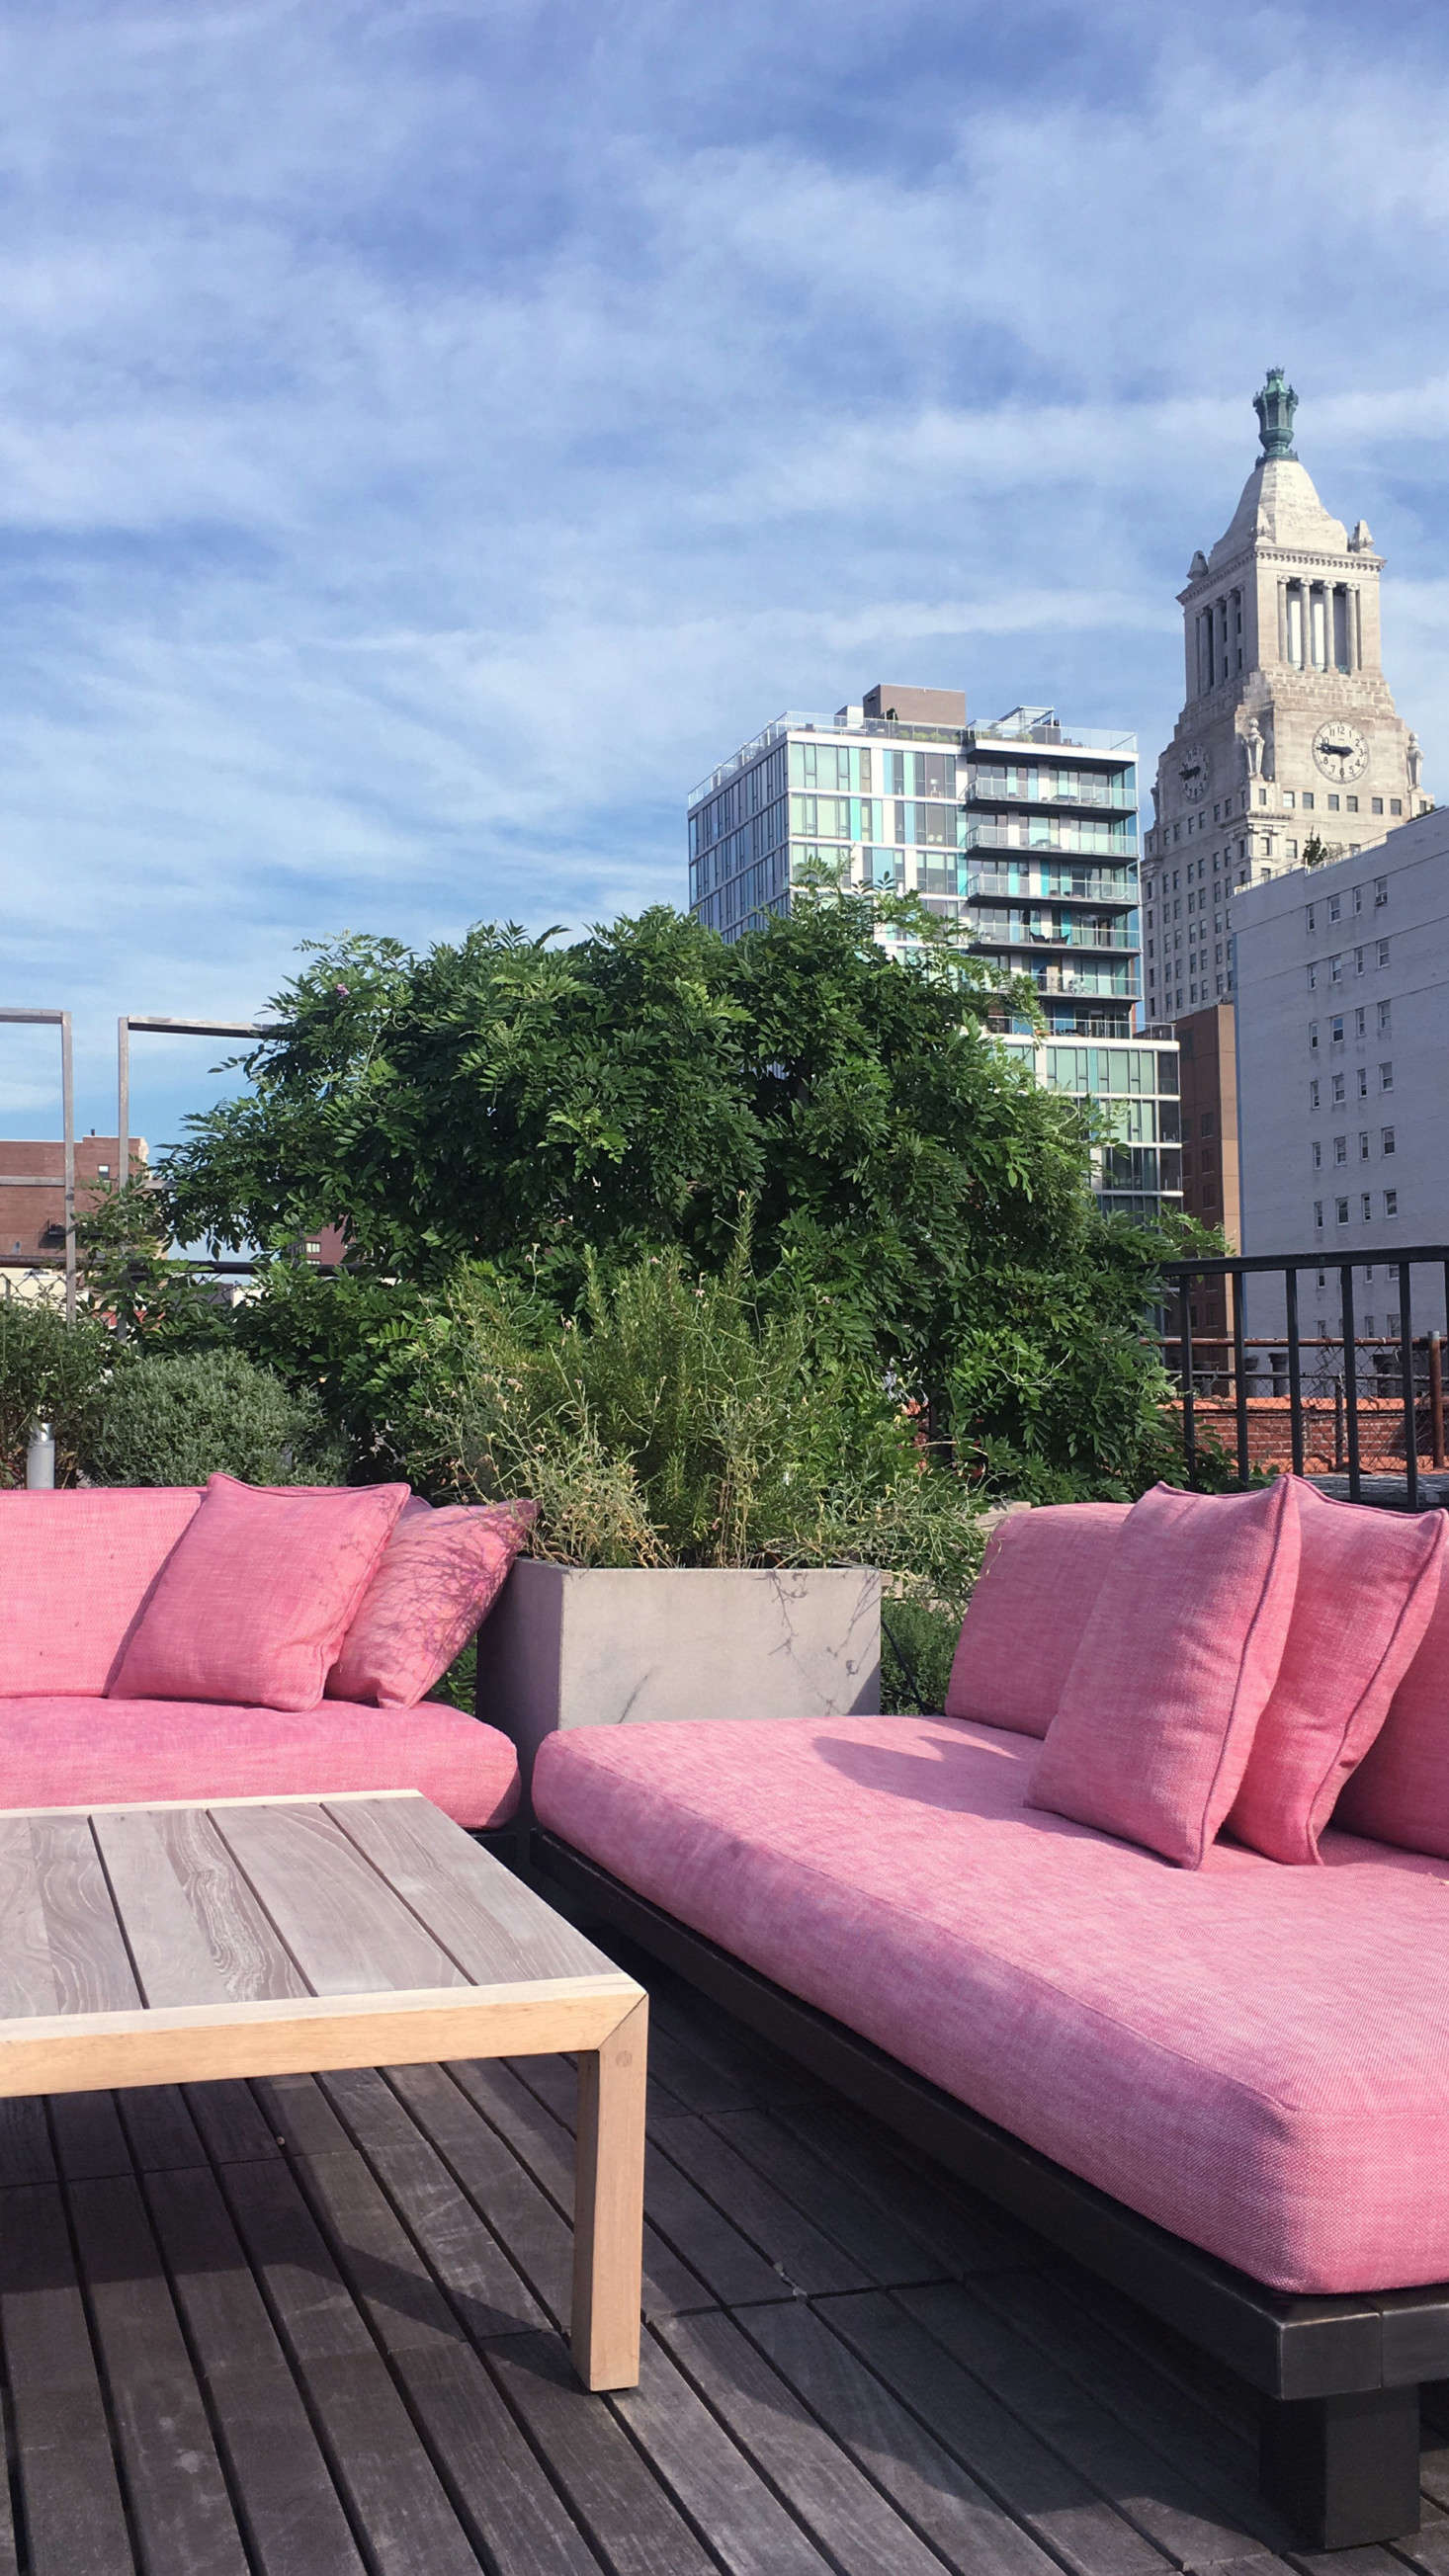 Ms. Keck purchased from West Elm two matching Tillary Sofas (no longer available) and had pink custom cushion covers made from Perennials outdoor fabric. With two identical sofas, &#8